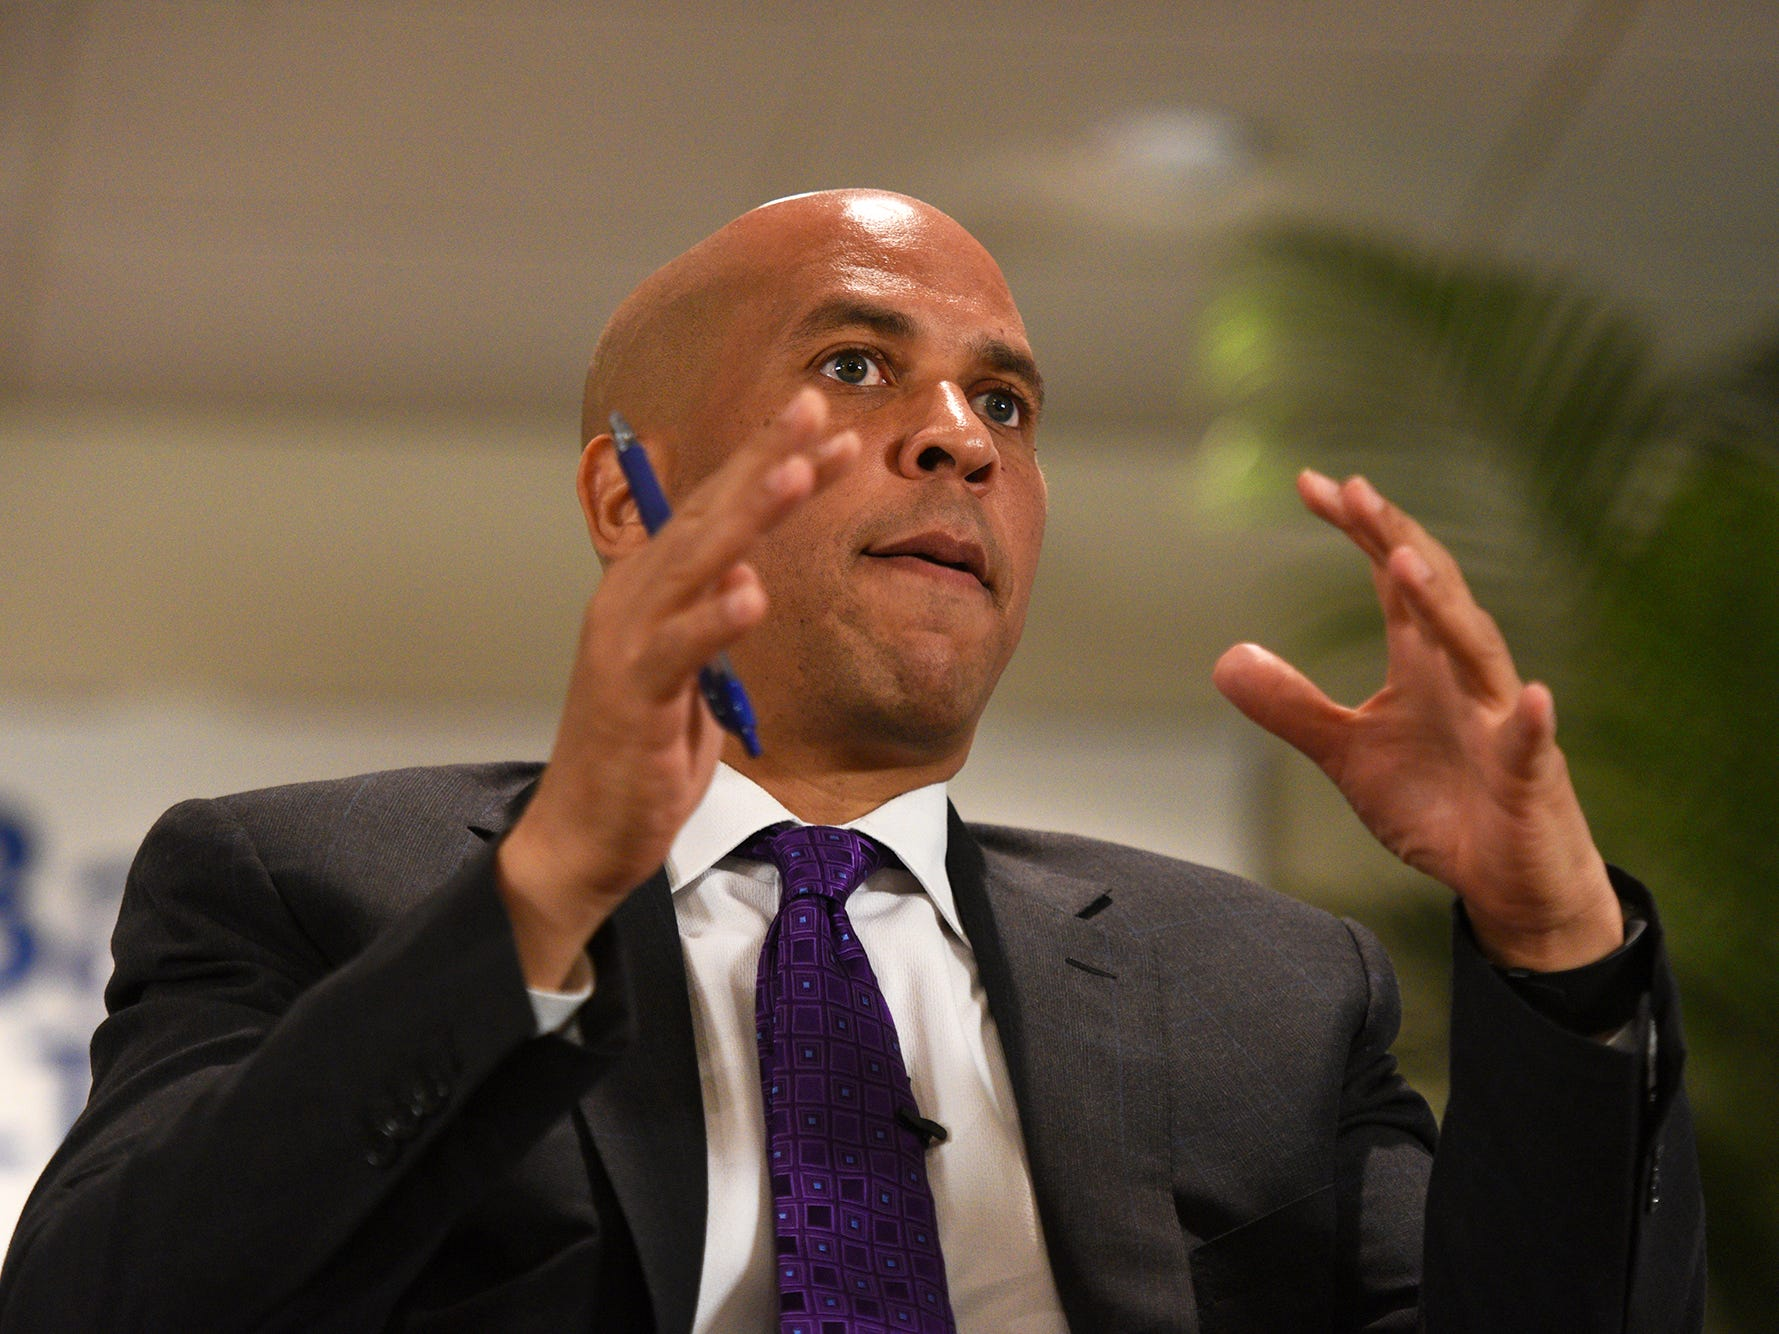 00021192A --- Livingston  -- Monday, August 8, 2016 -- NJ Senator Cory Booker was part of a panel of speakers during a forum on Heroin and Opioid Addiction Crisis held at St. Barnabas Medical Center on Monday. Also on the panel were U.S. Surgeon General, Dr. Vivek Murthy, VA Under Secretary for Health, Dr. David Shulkin, and NJ Senator Bob Menendez.